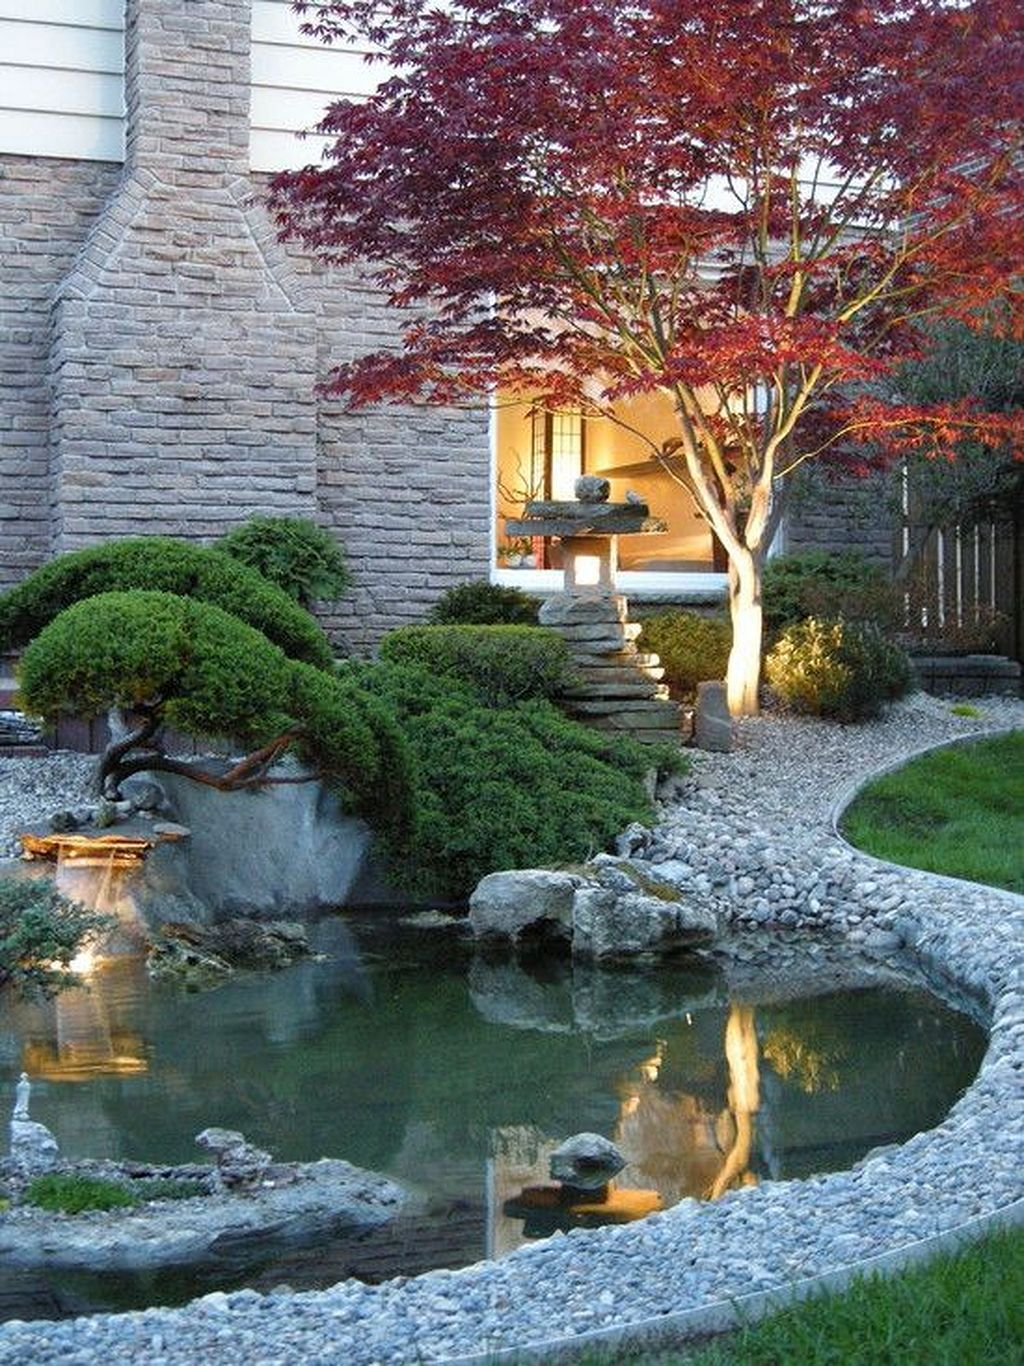 42 beautiful backyard ponds and water garden ideas with on most beautiful backyard landscaping ideas id=63577